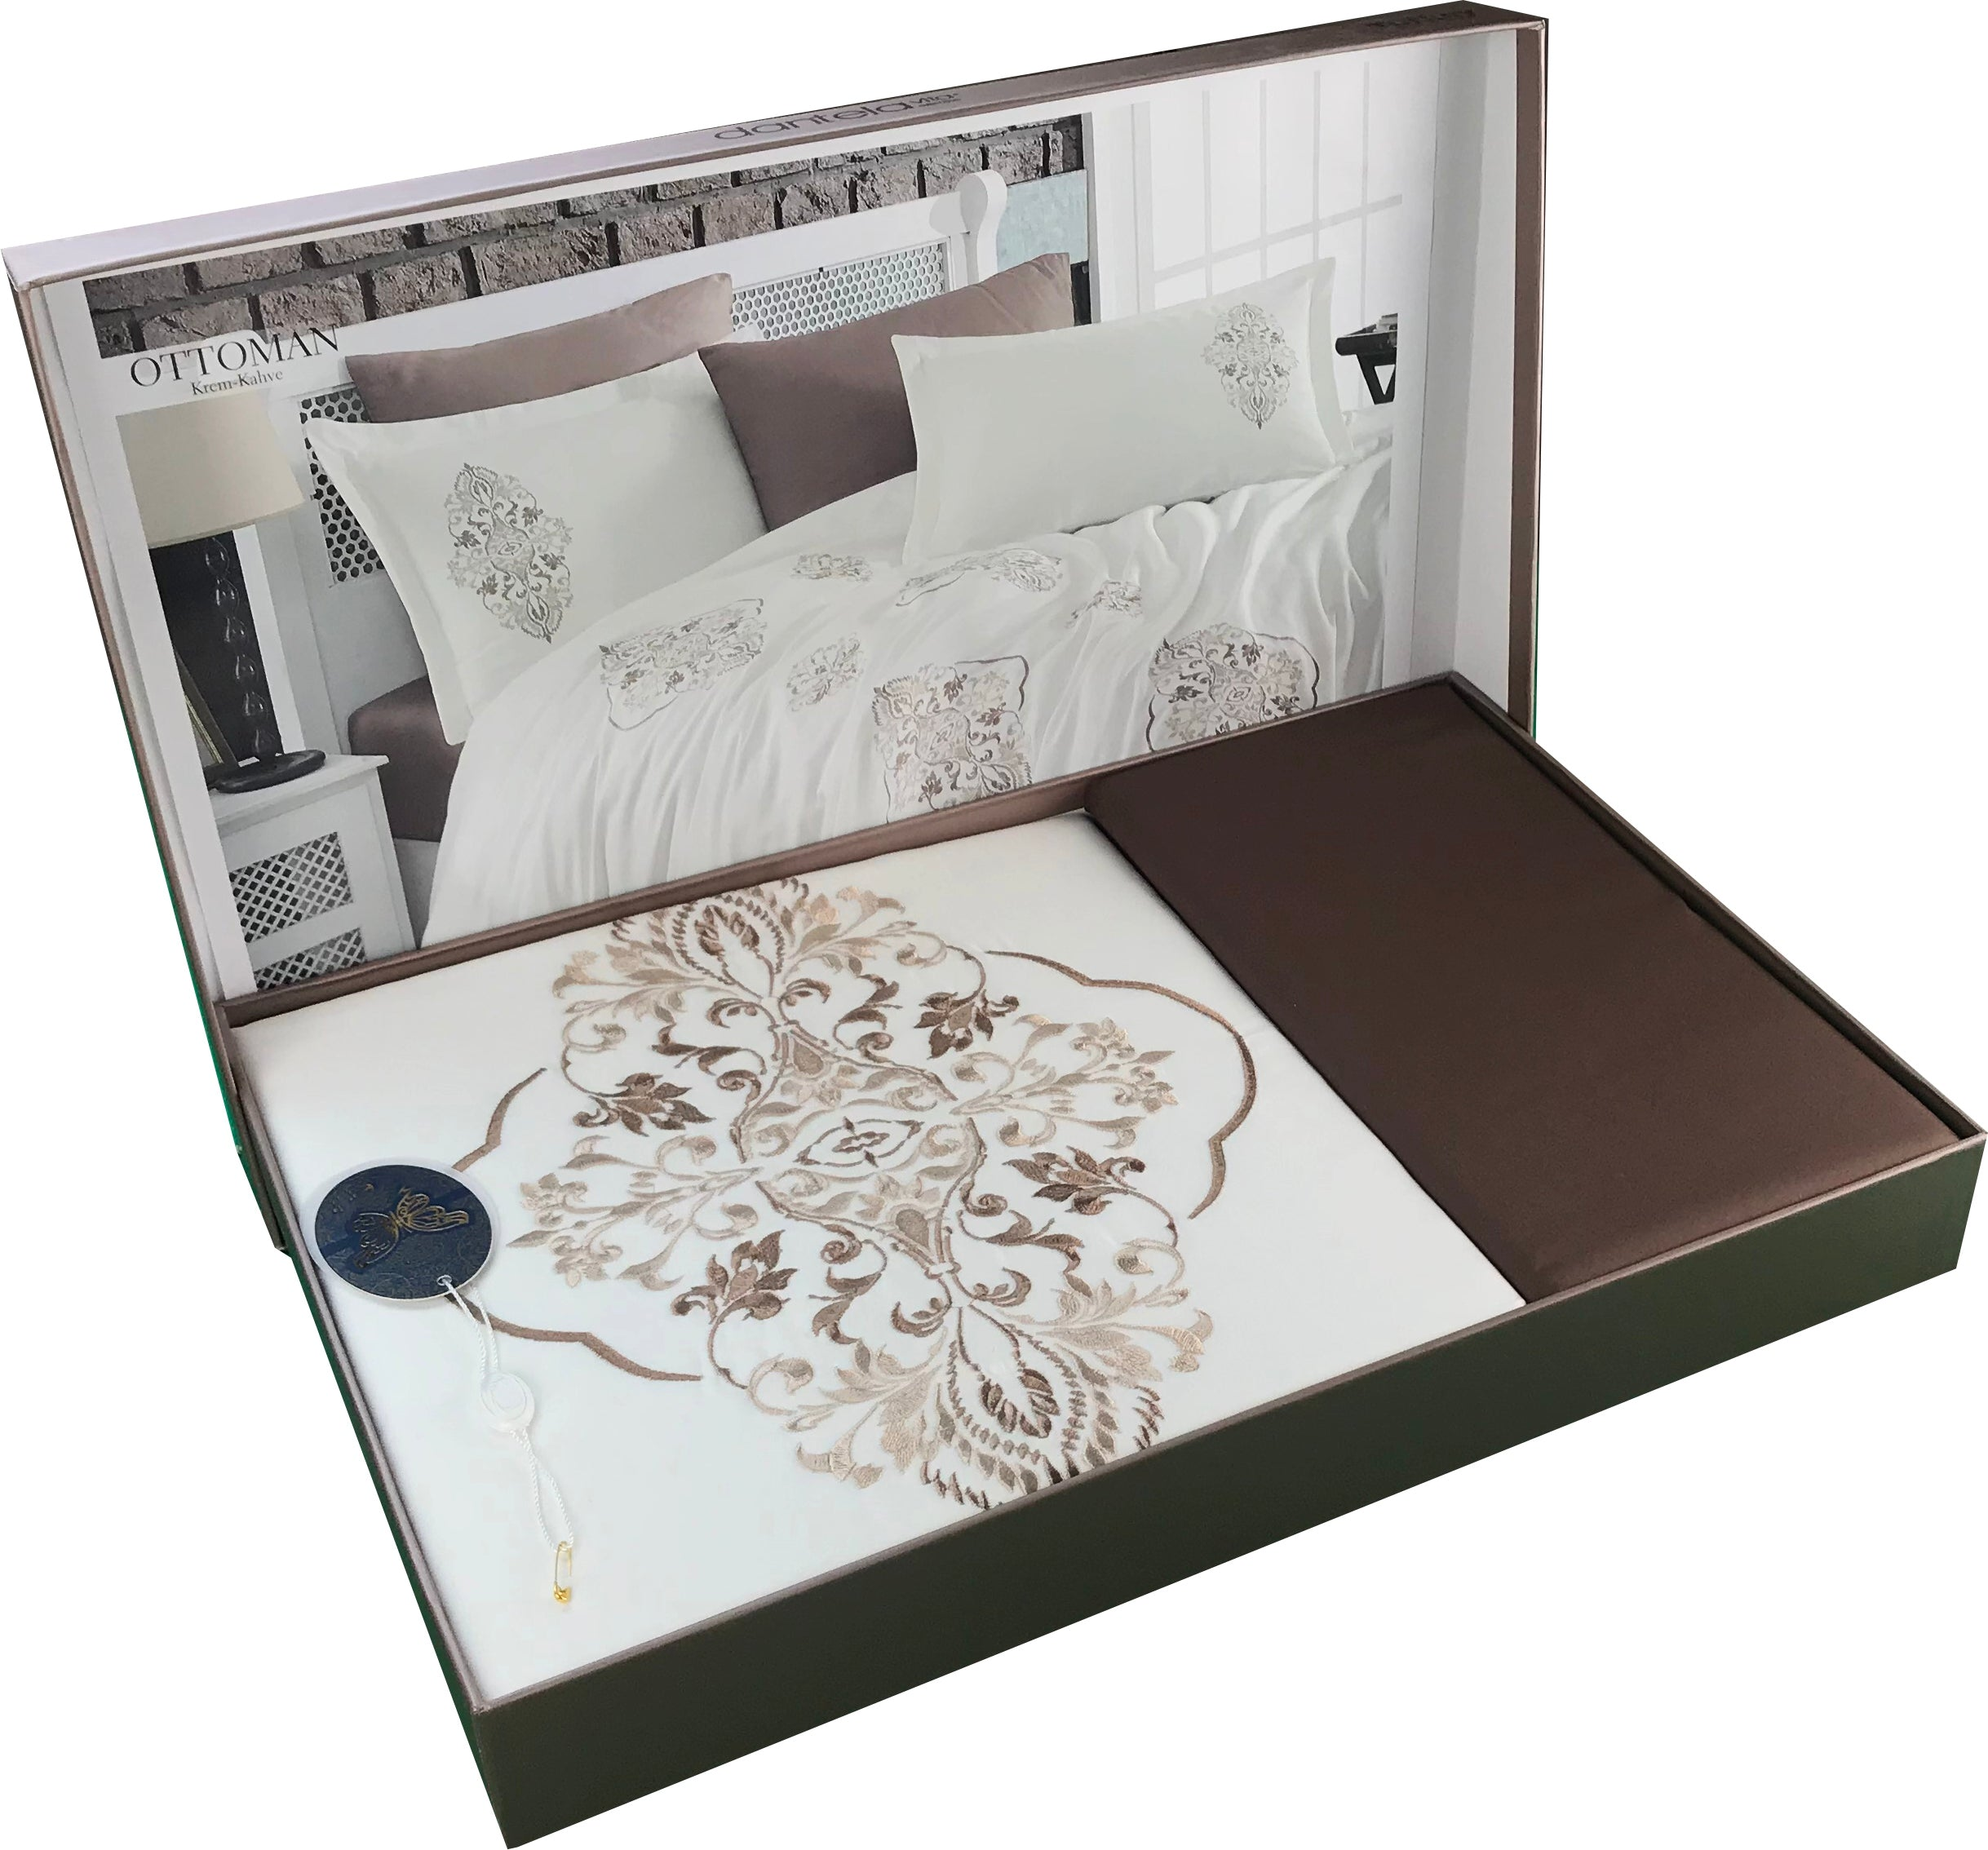 White Bedding Set Including: Duvet Cover, Bed Sheet, Pillow case and Pillow Shams